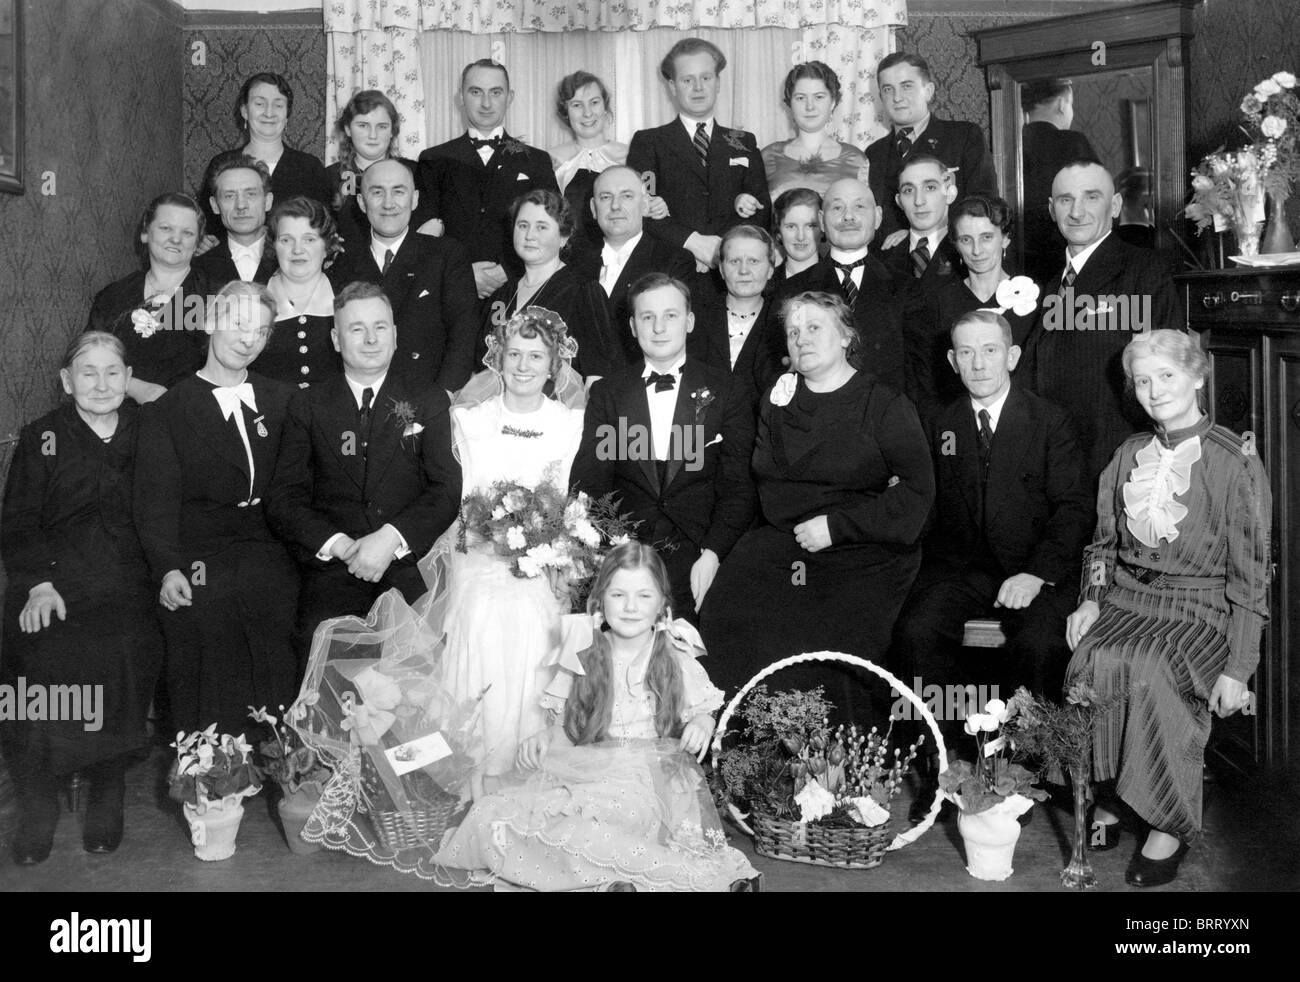 Wedding, historic photograph, around 1930 - Stock Image